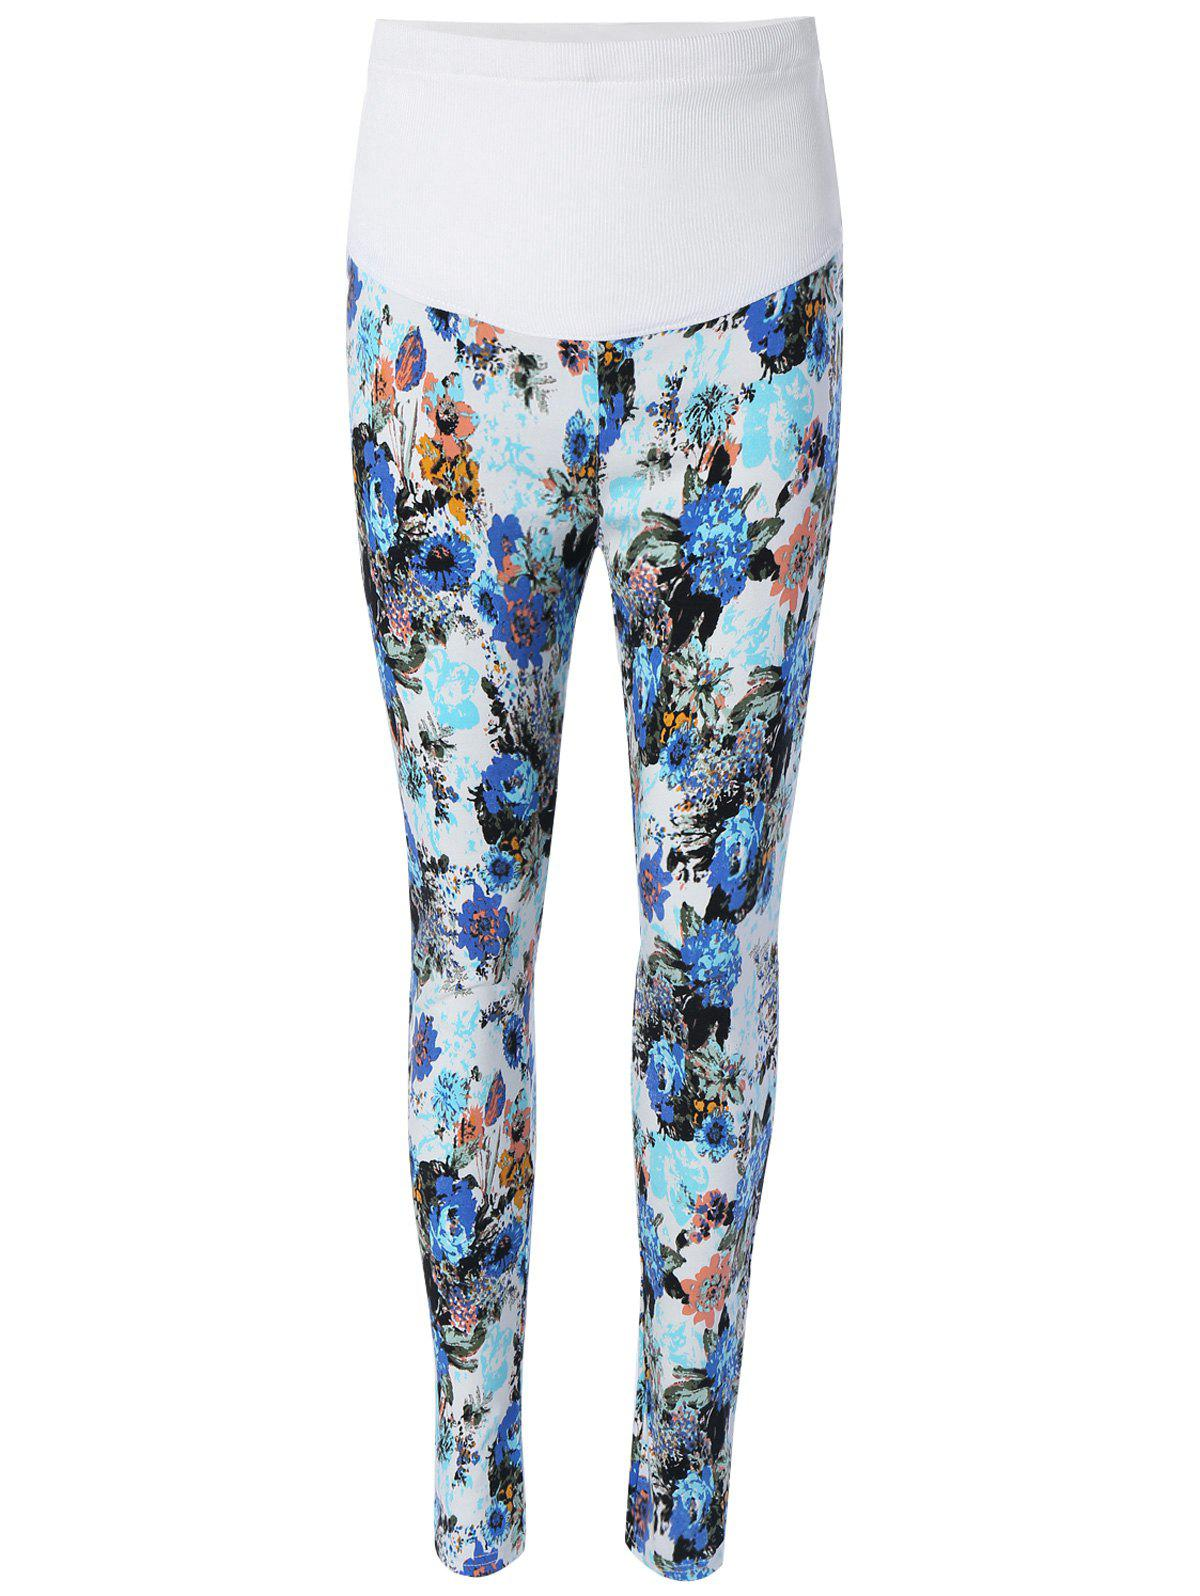 Leggings imprimé floral Bleu 2XL